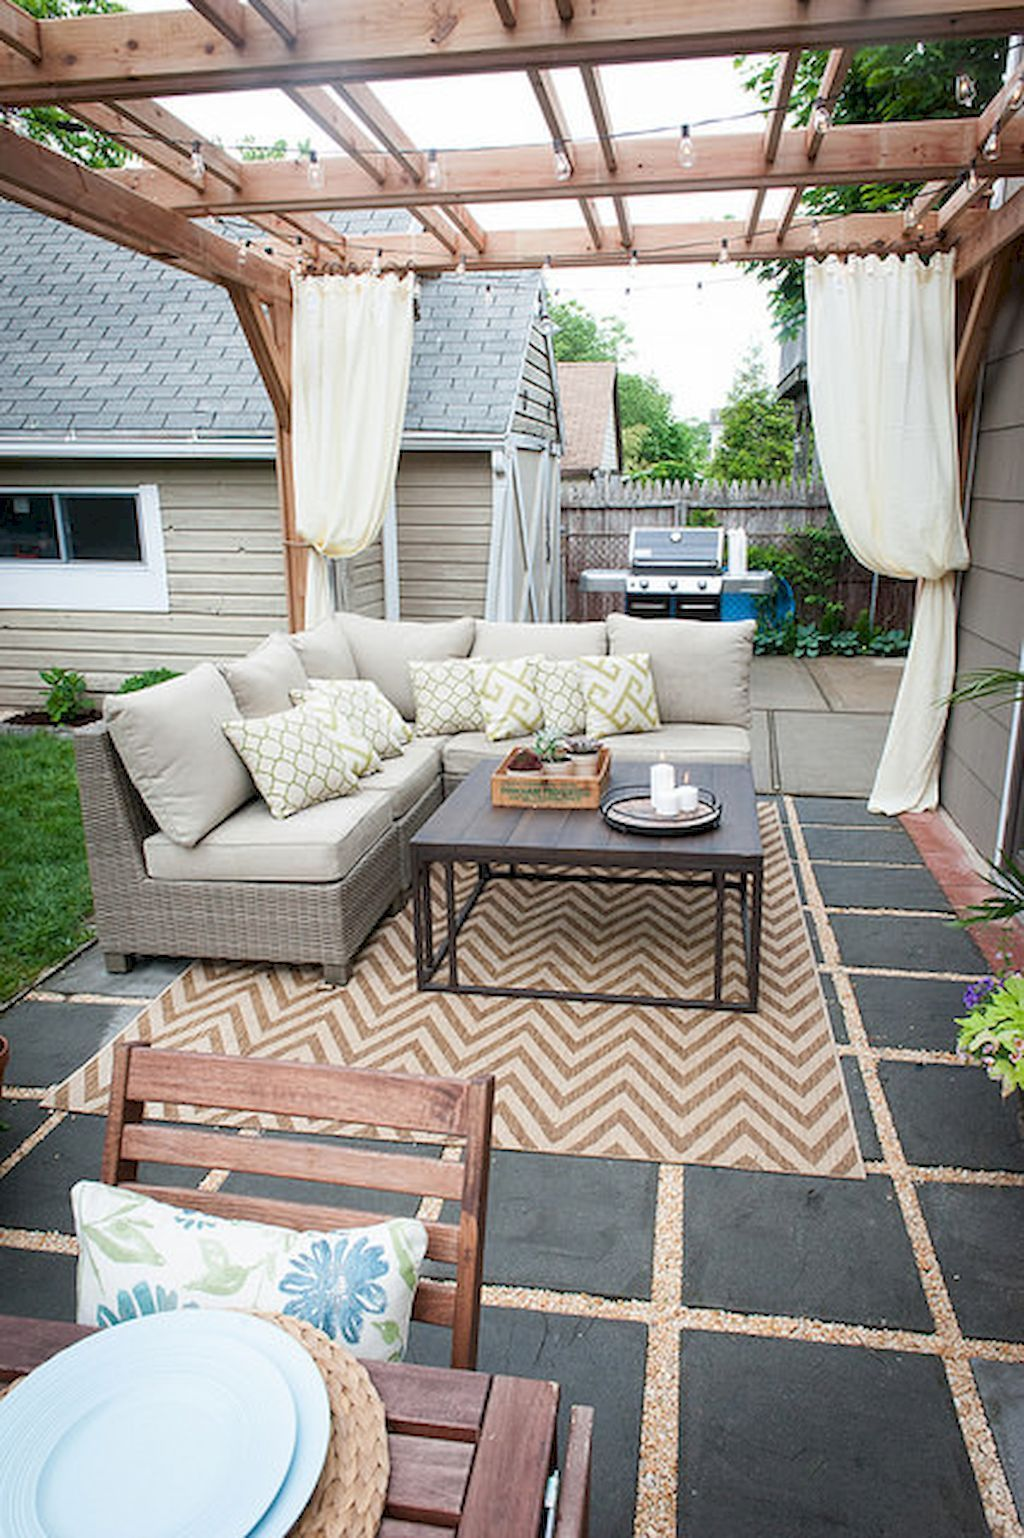 16 Absolutely Genius Small Deck Ideas Youll Love ...